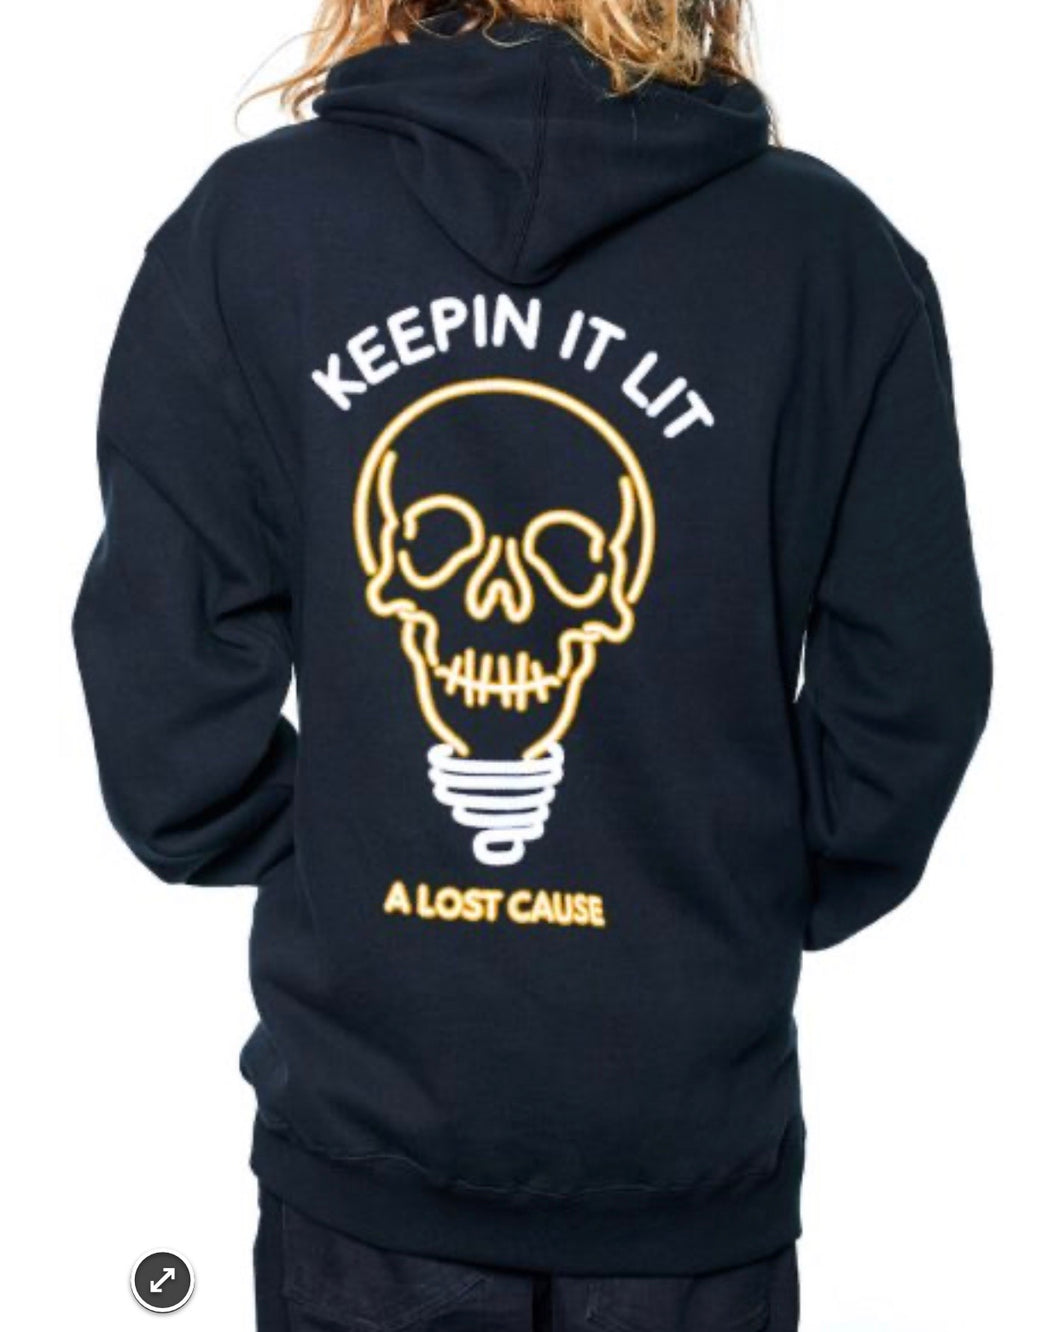 A Lost Cause Lit V2 Hoodie